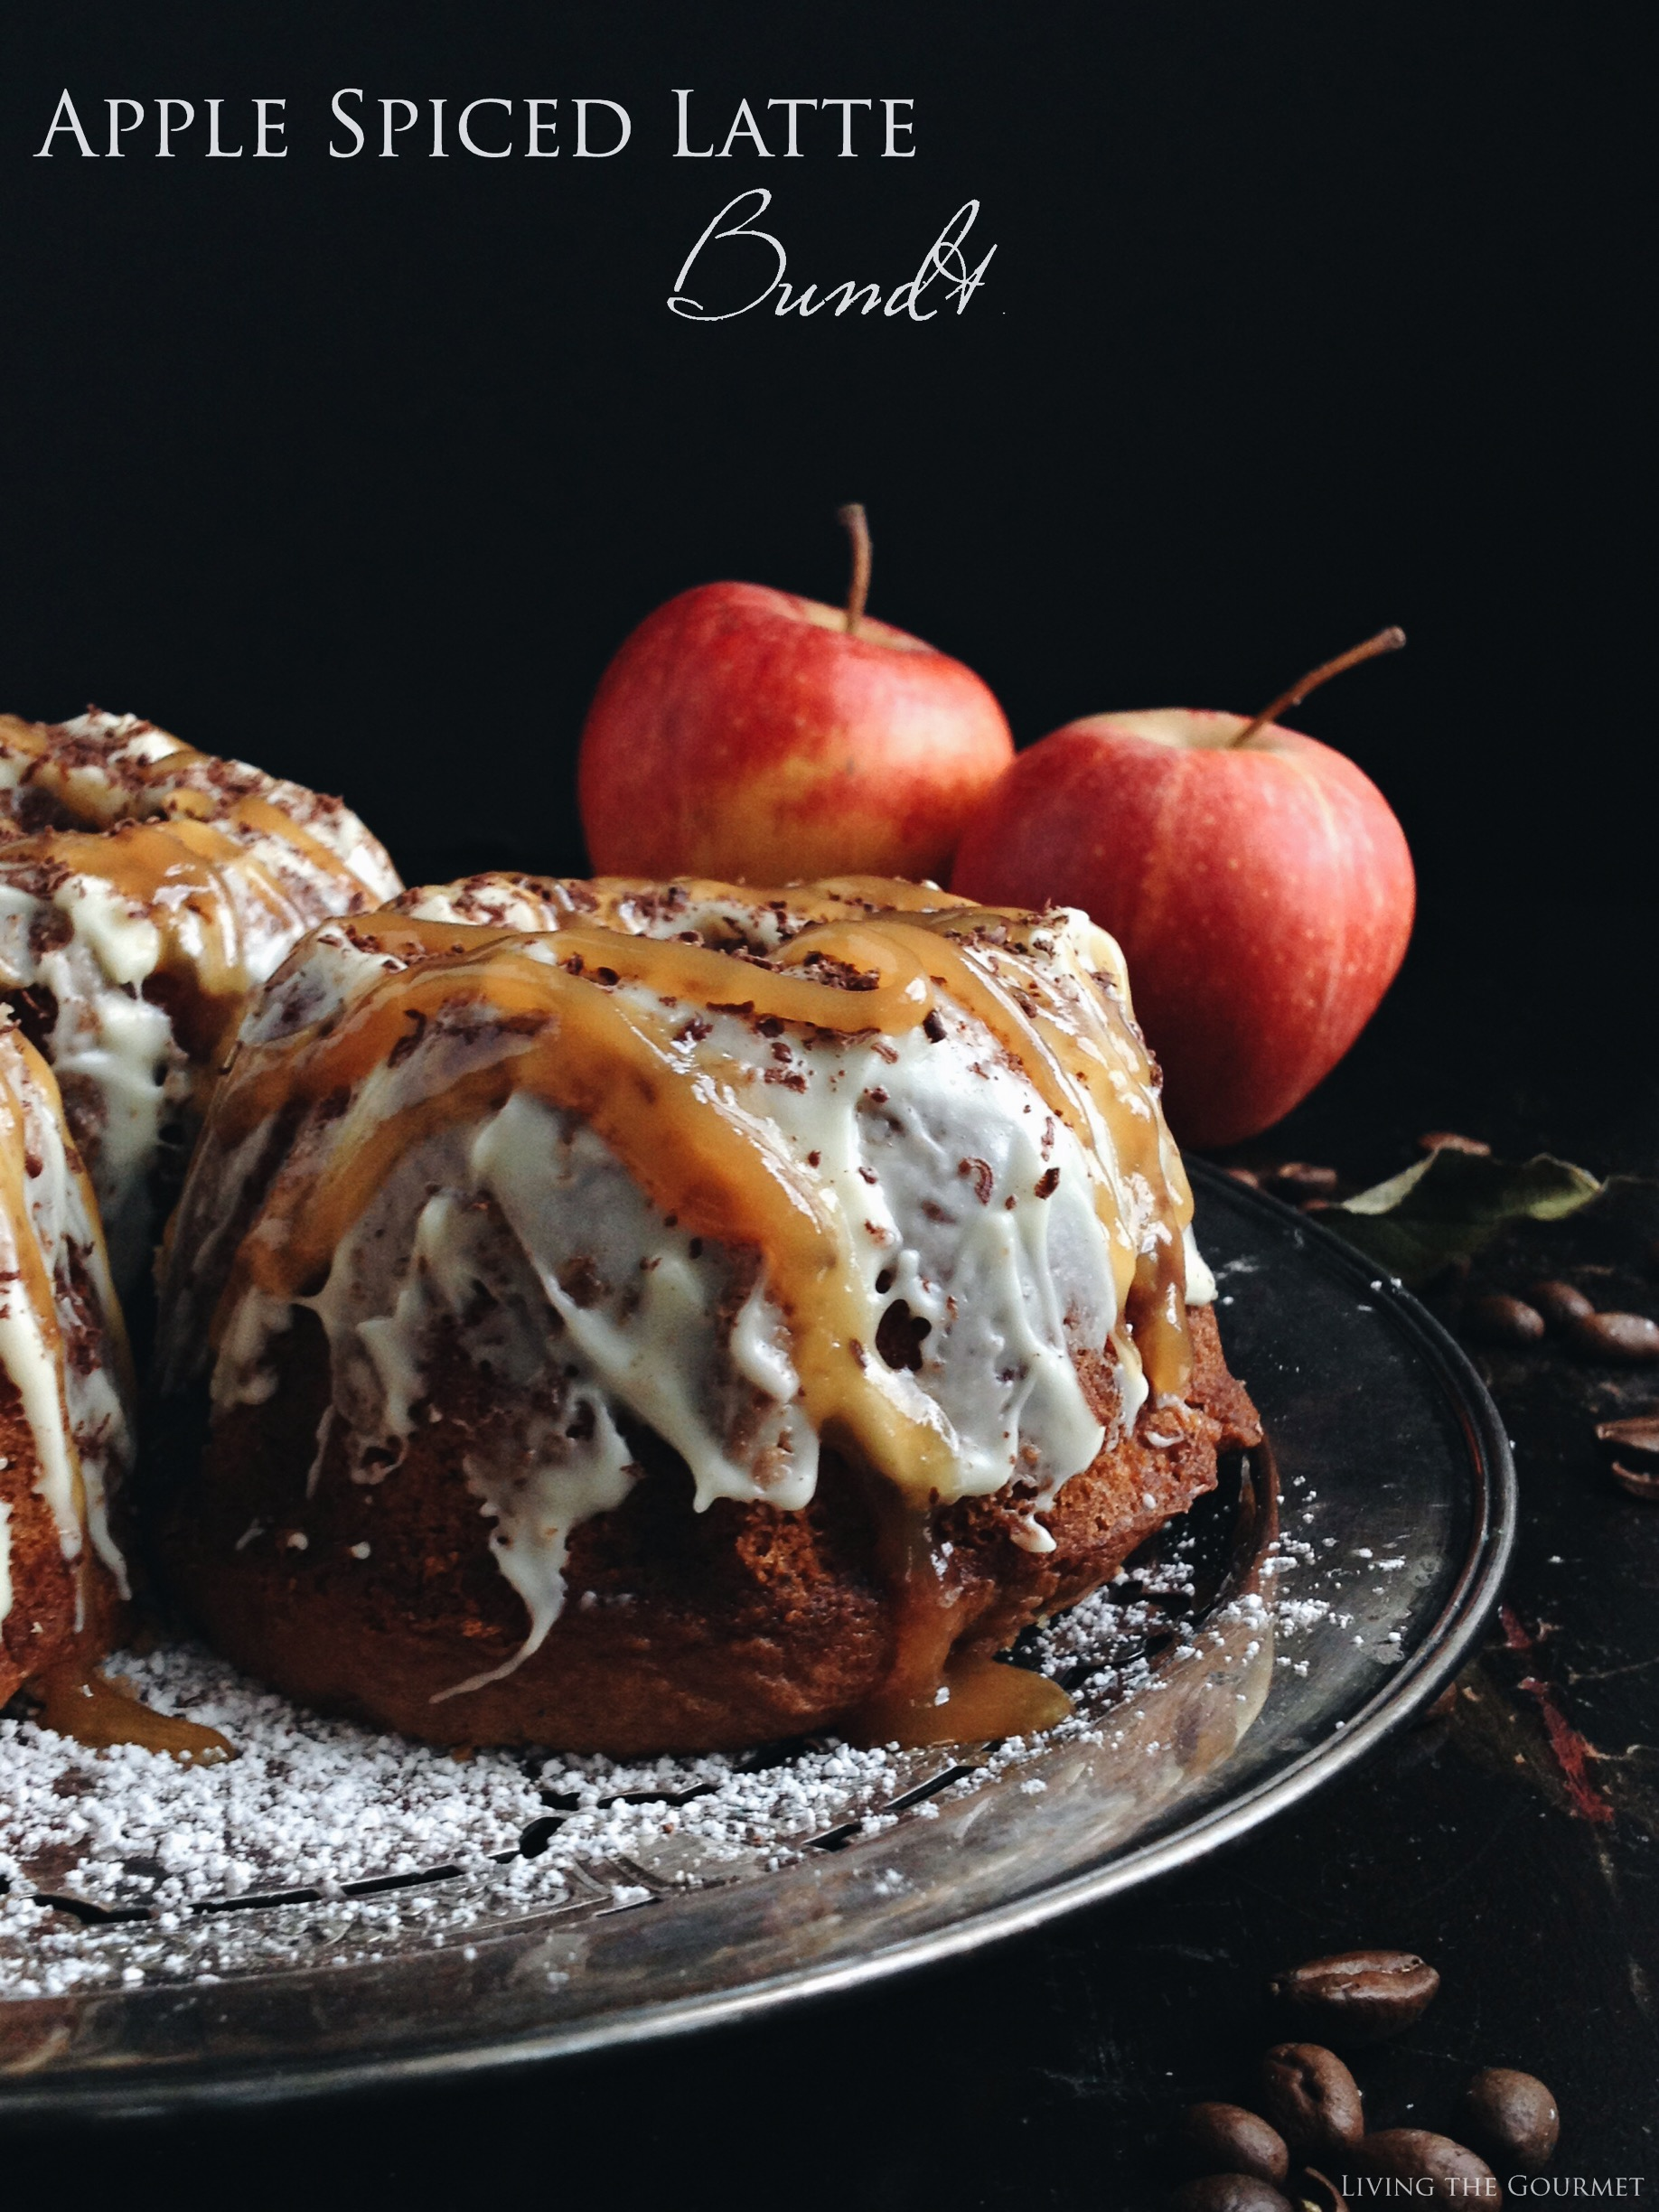 Living the Gourmet: #BundtBakers: Apple Spice Latte Bundt